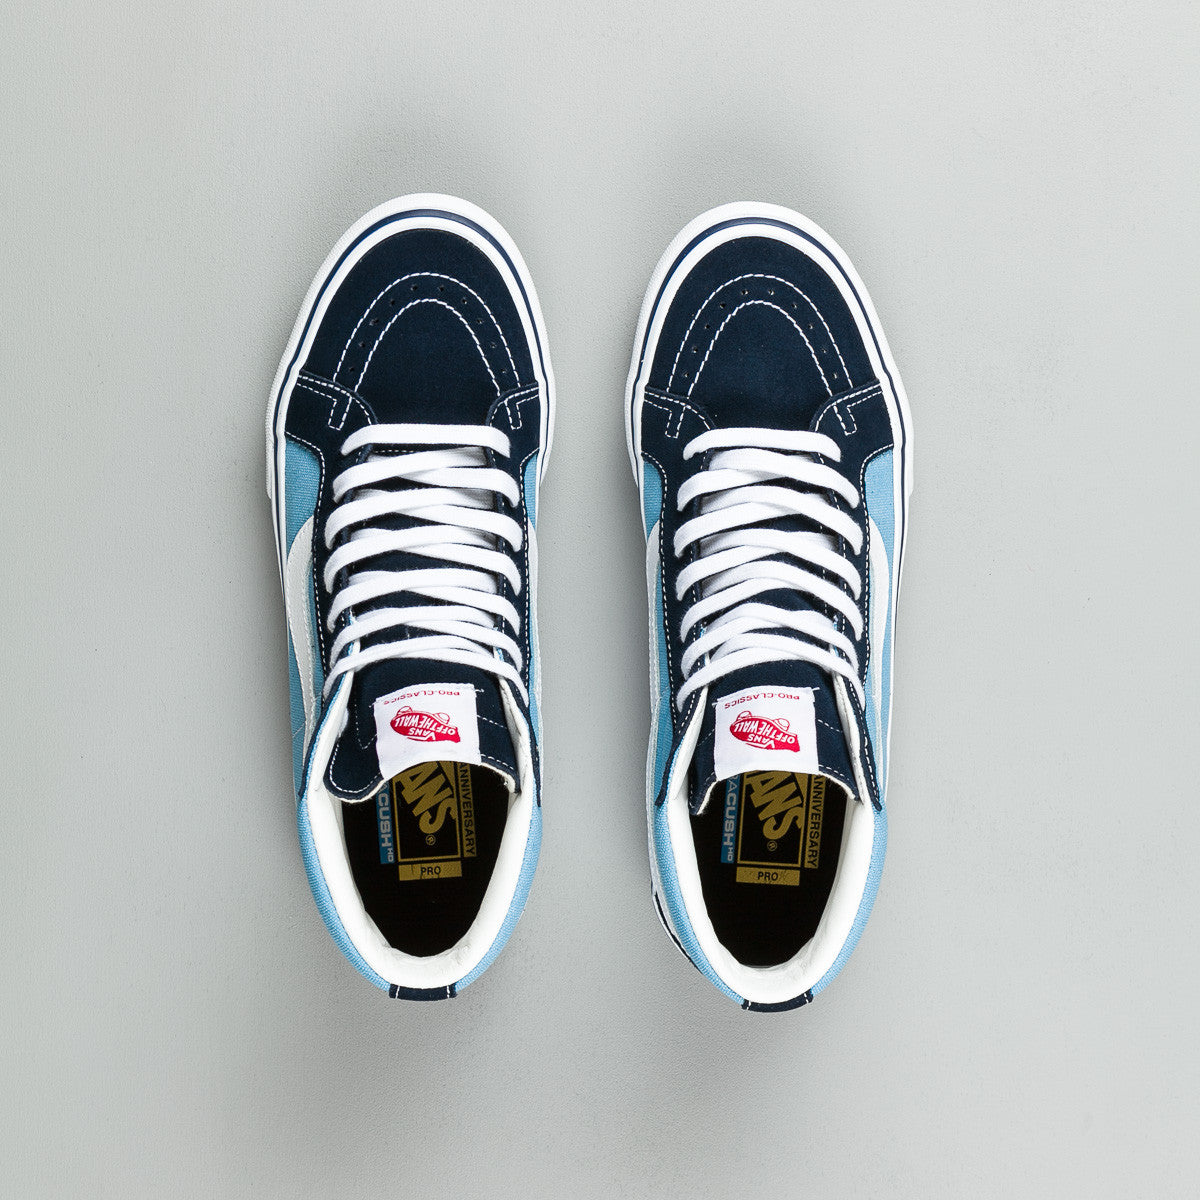 Vans 50th Sk8-Hi Reissue '86 Shoes - Navy / White